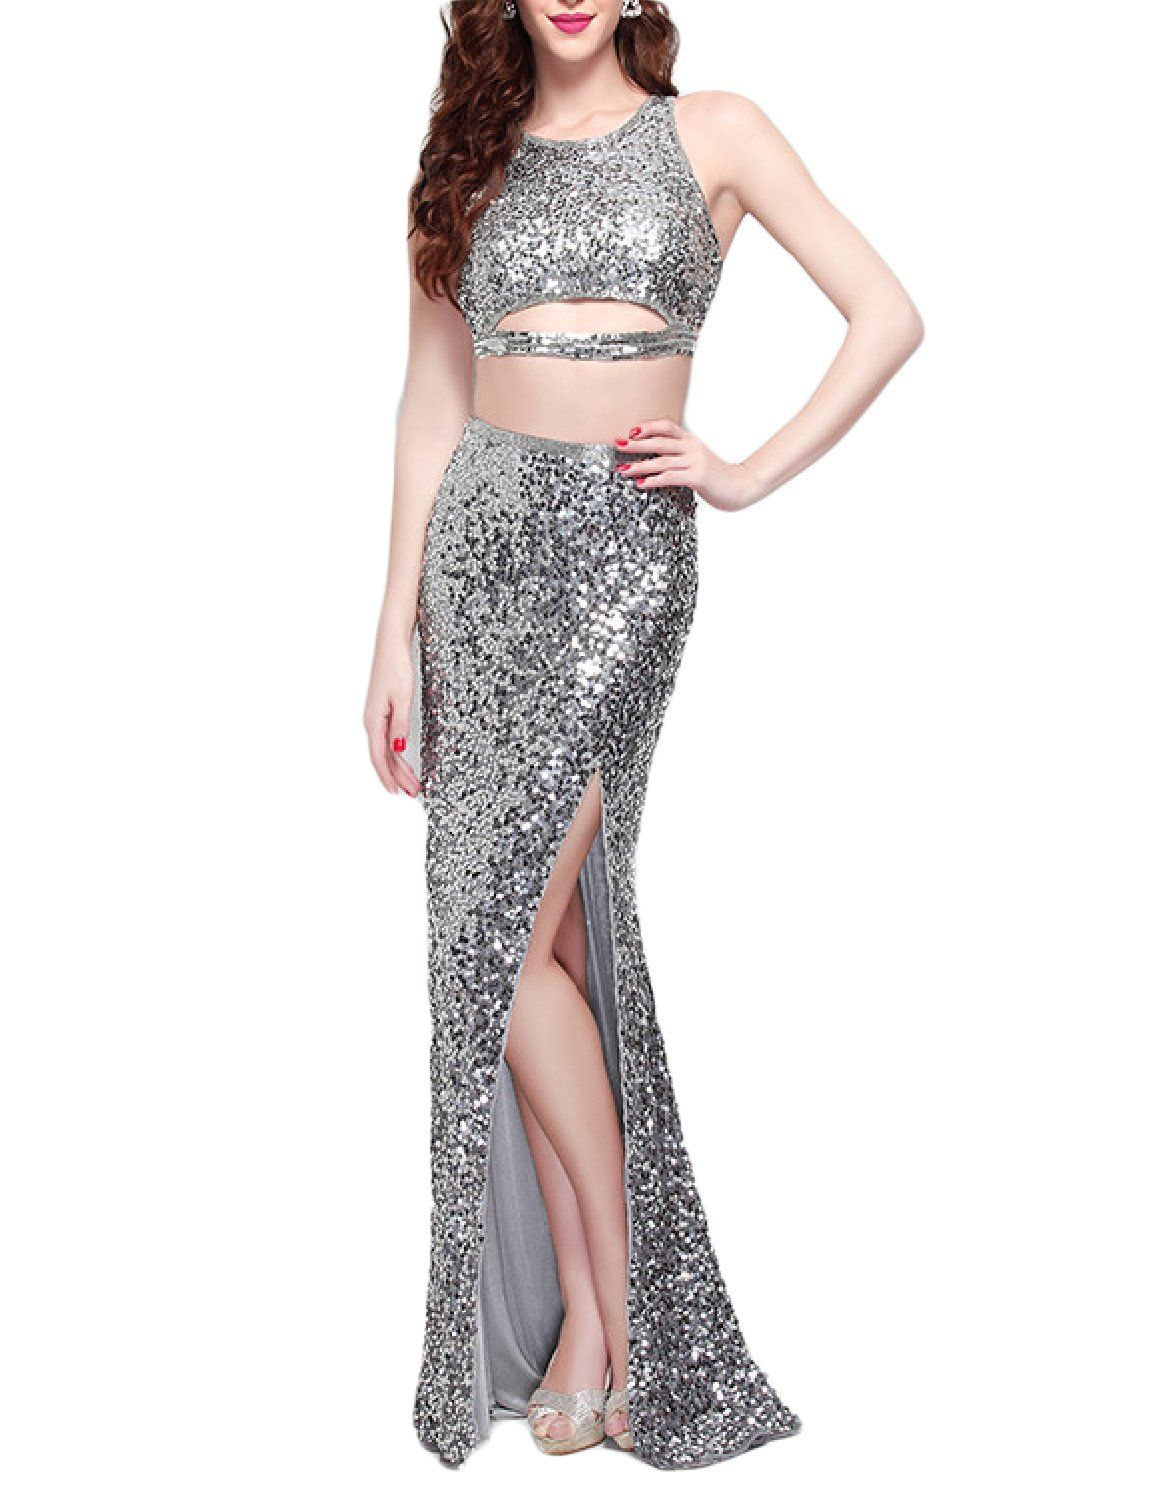 Promcc womens sequins two piece prom dress split sexy formal evening